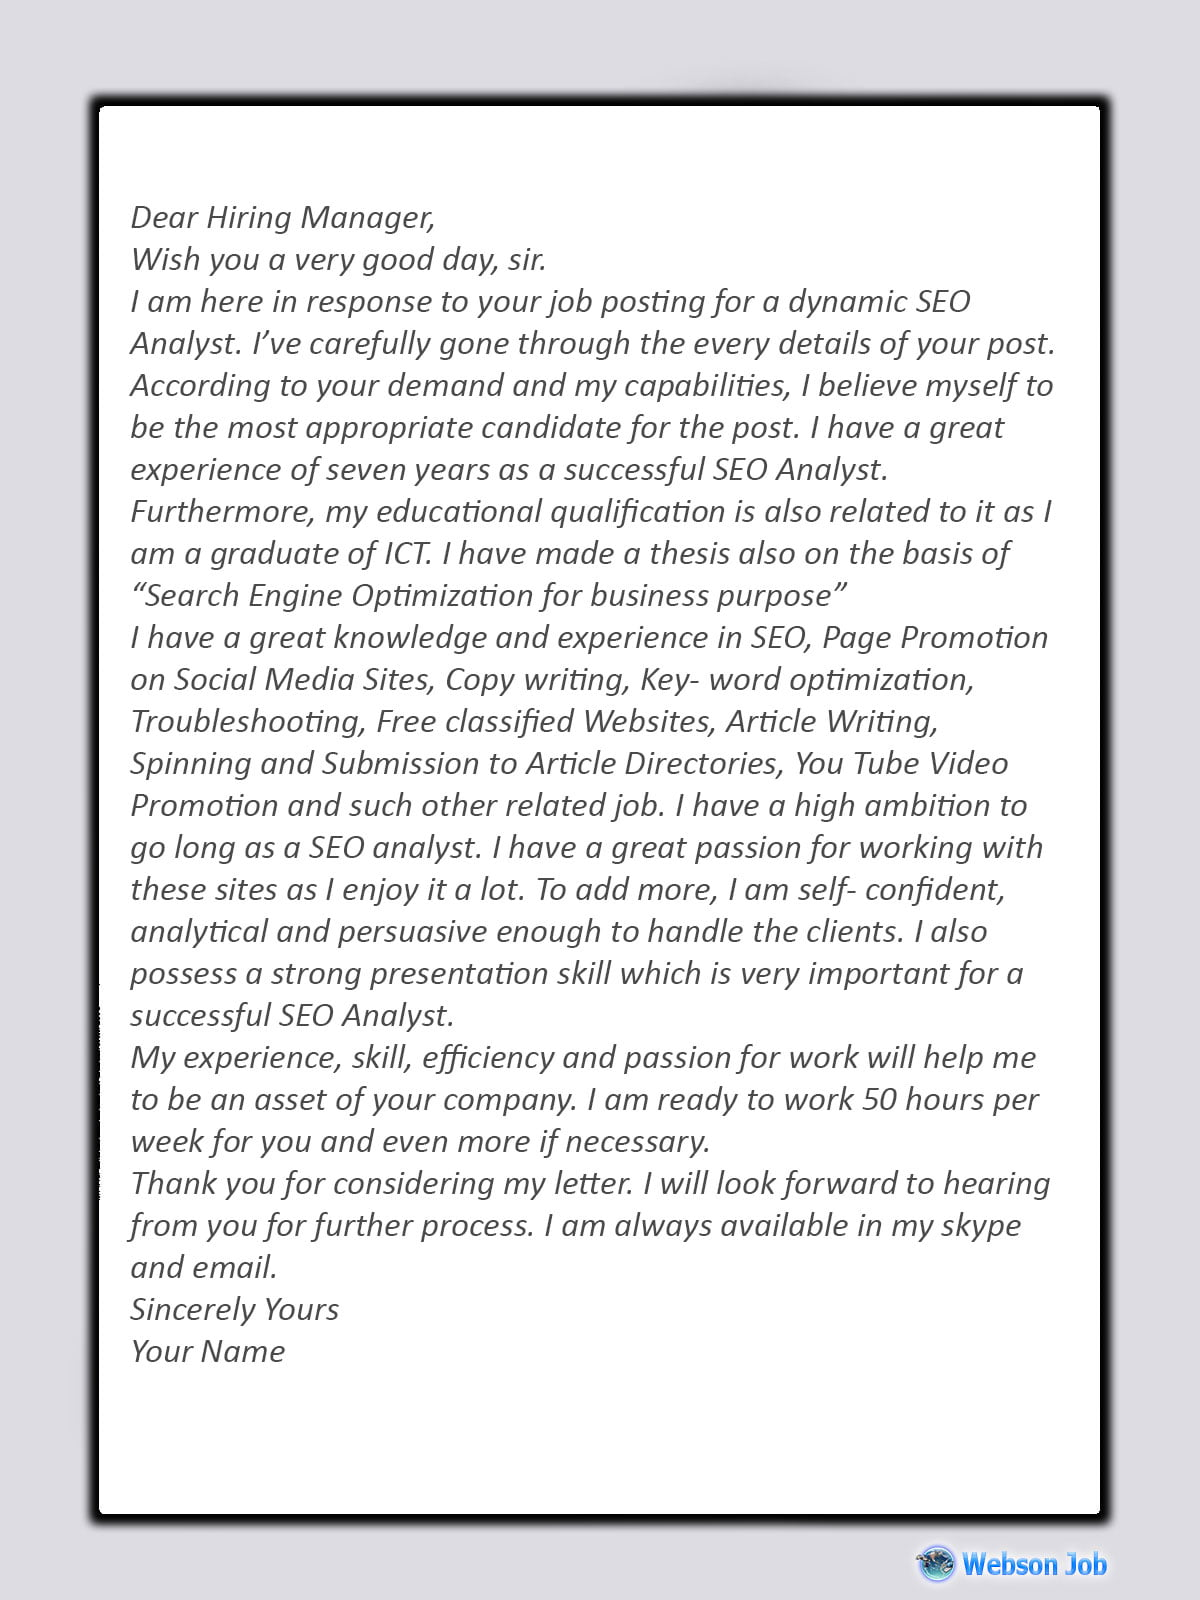 Upwork Cover Letter Sample for SEO (Search Engine Optimization)